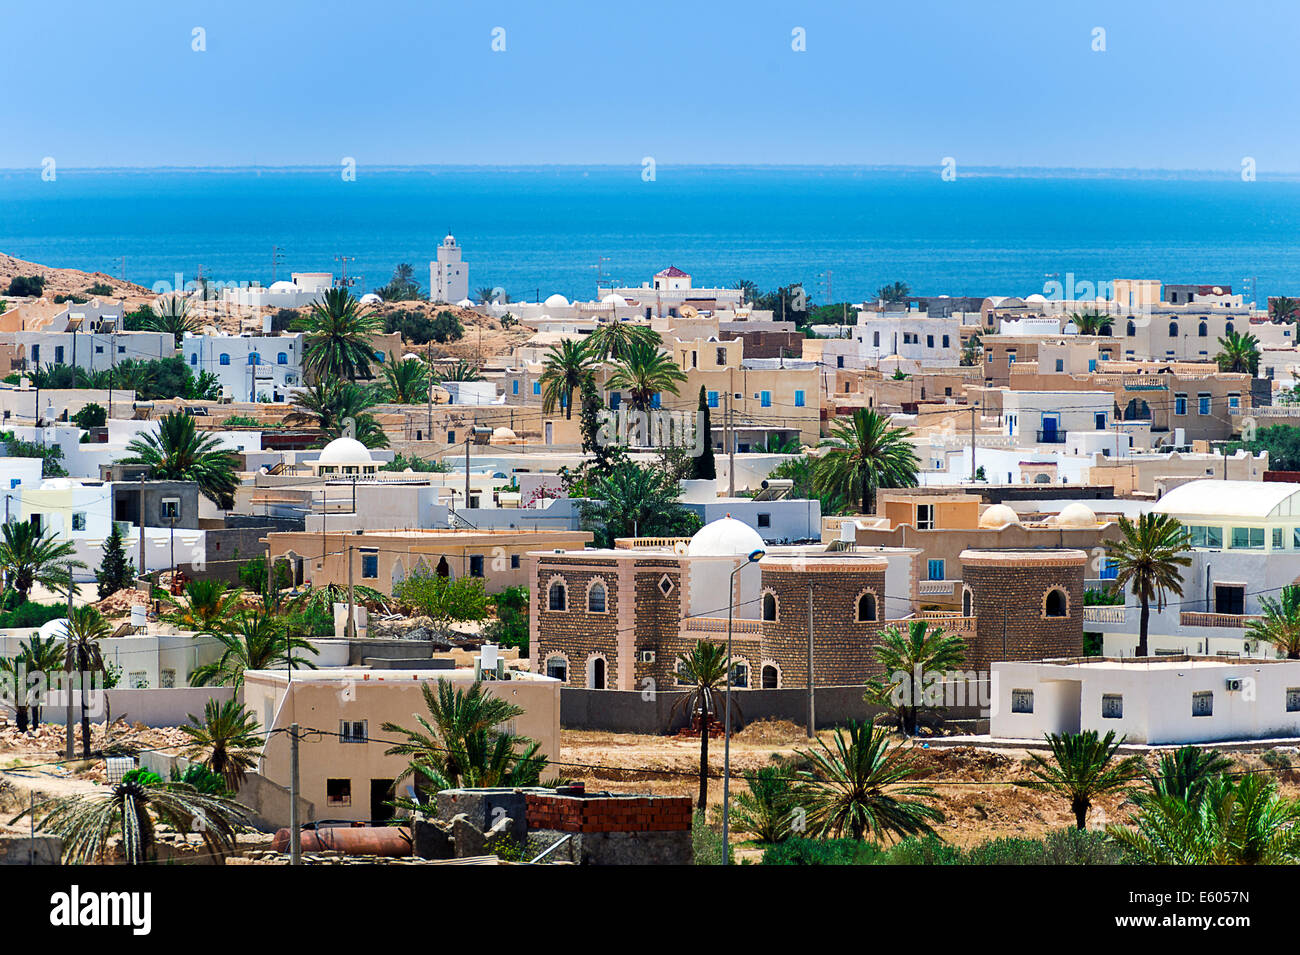 Africa, North Africa, Maghreb, South Tunisia, Djerba island. Guellala. - Stock Image